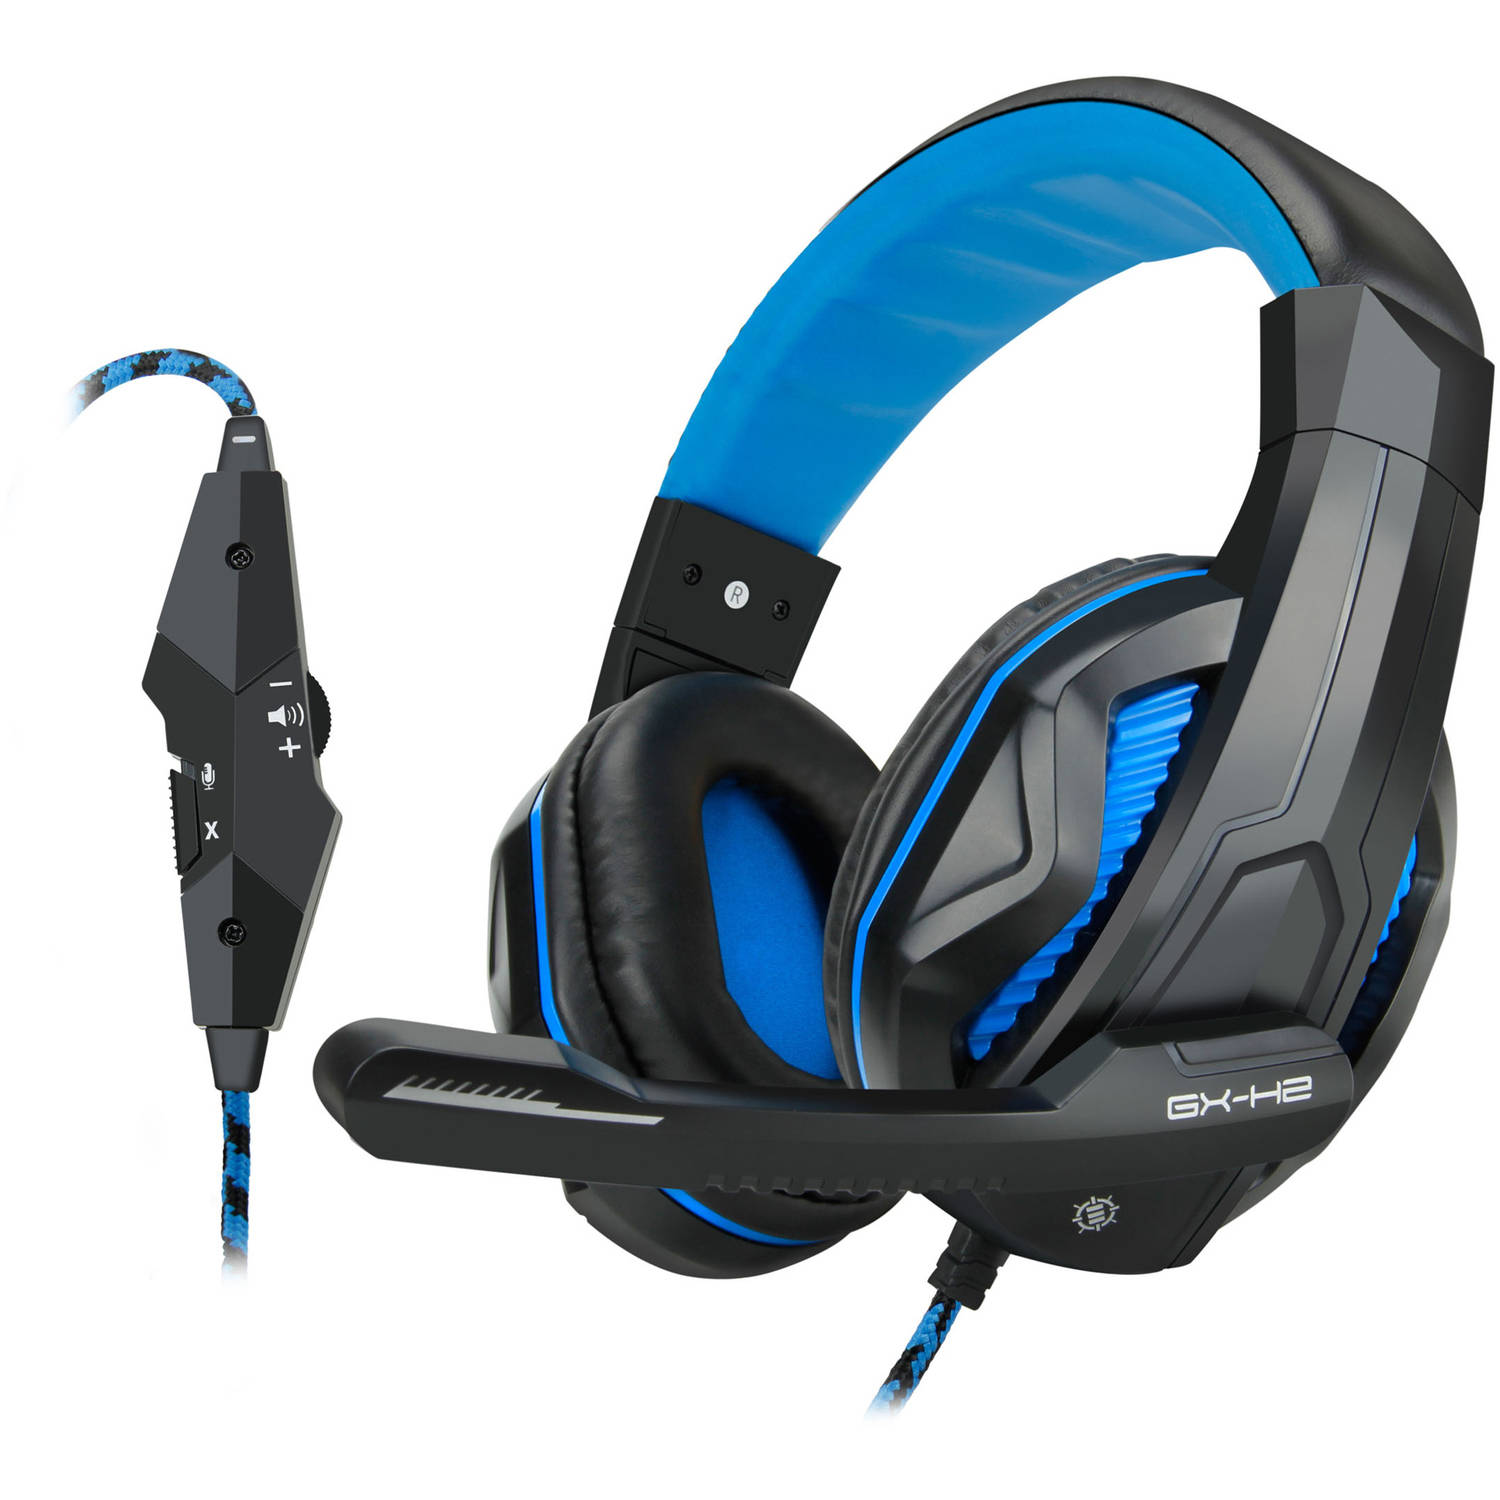 ENHANCE GX-H2 Stereo Gaming Headset with Comfortable Ear Padding and Adjustable Mic - Works With Laptop and Desktop Computers